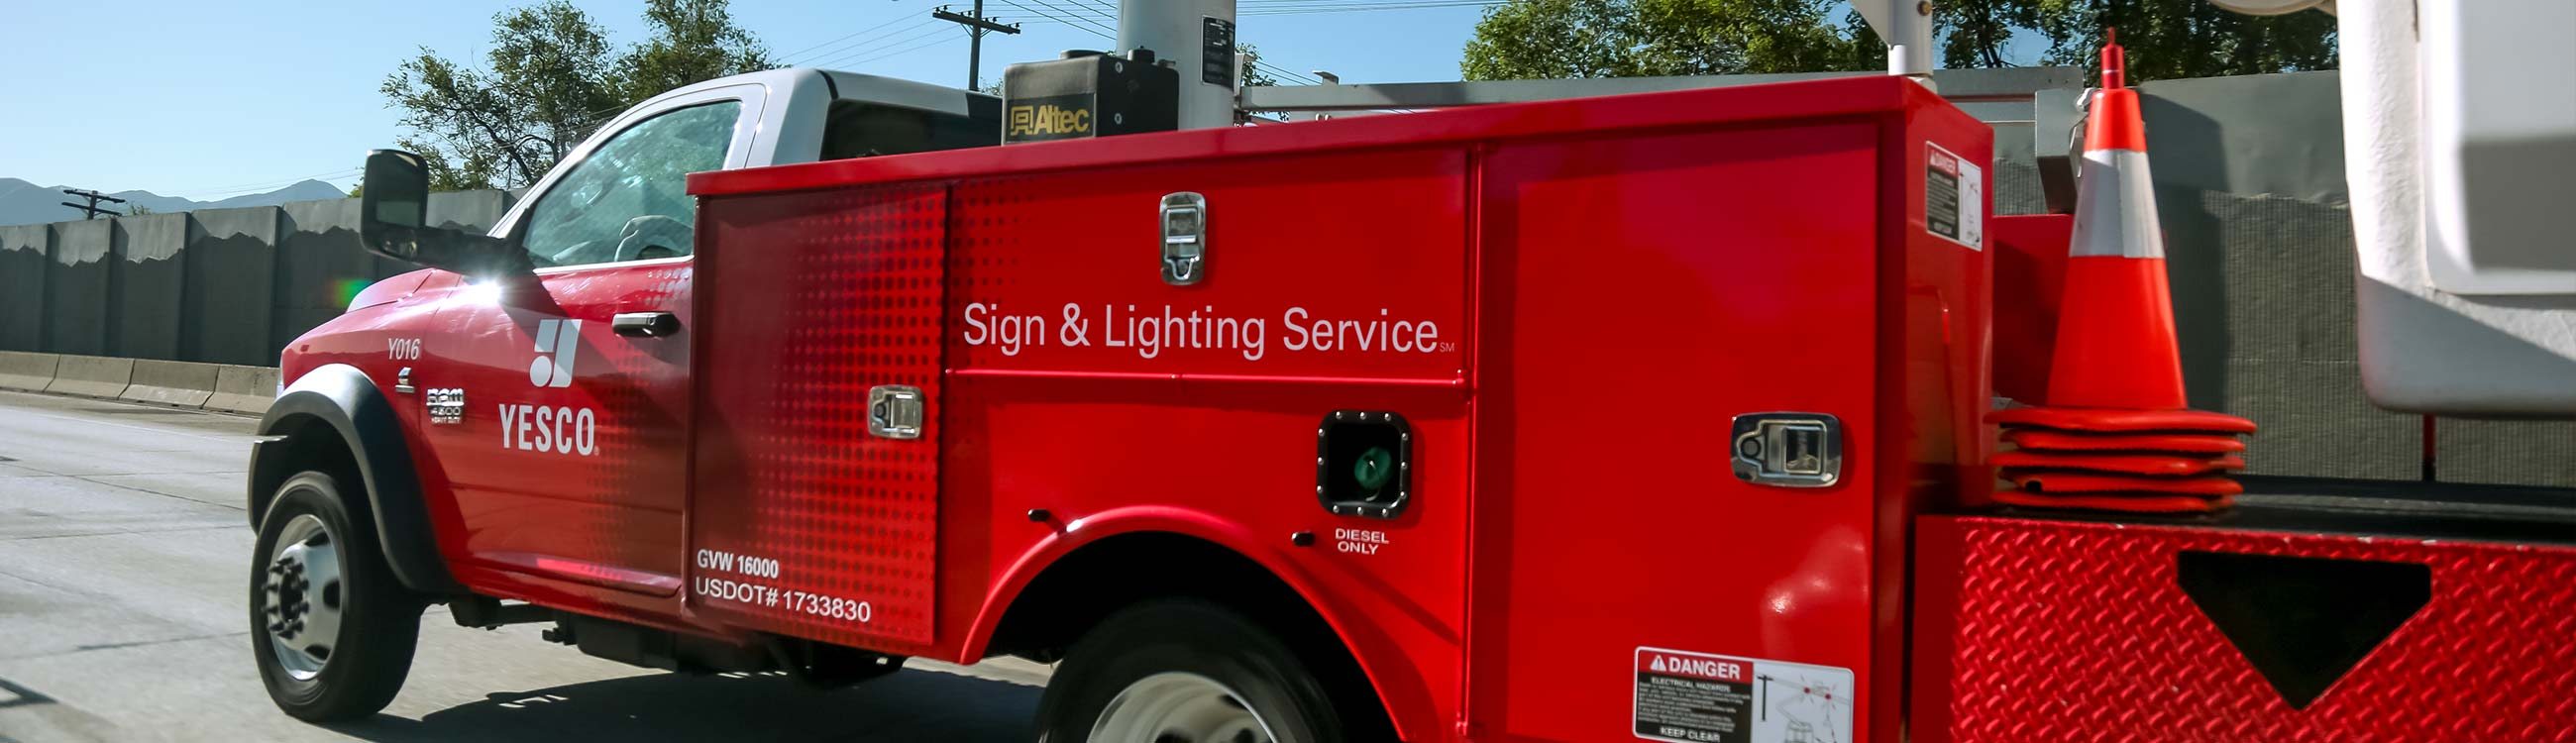 YESCO Sign & Lighting Service Twin Falls